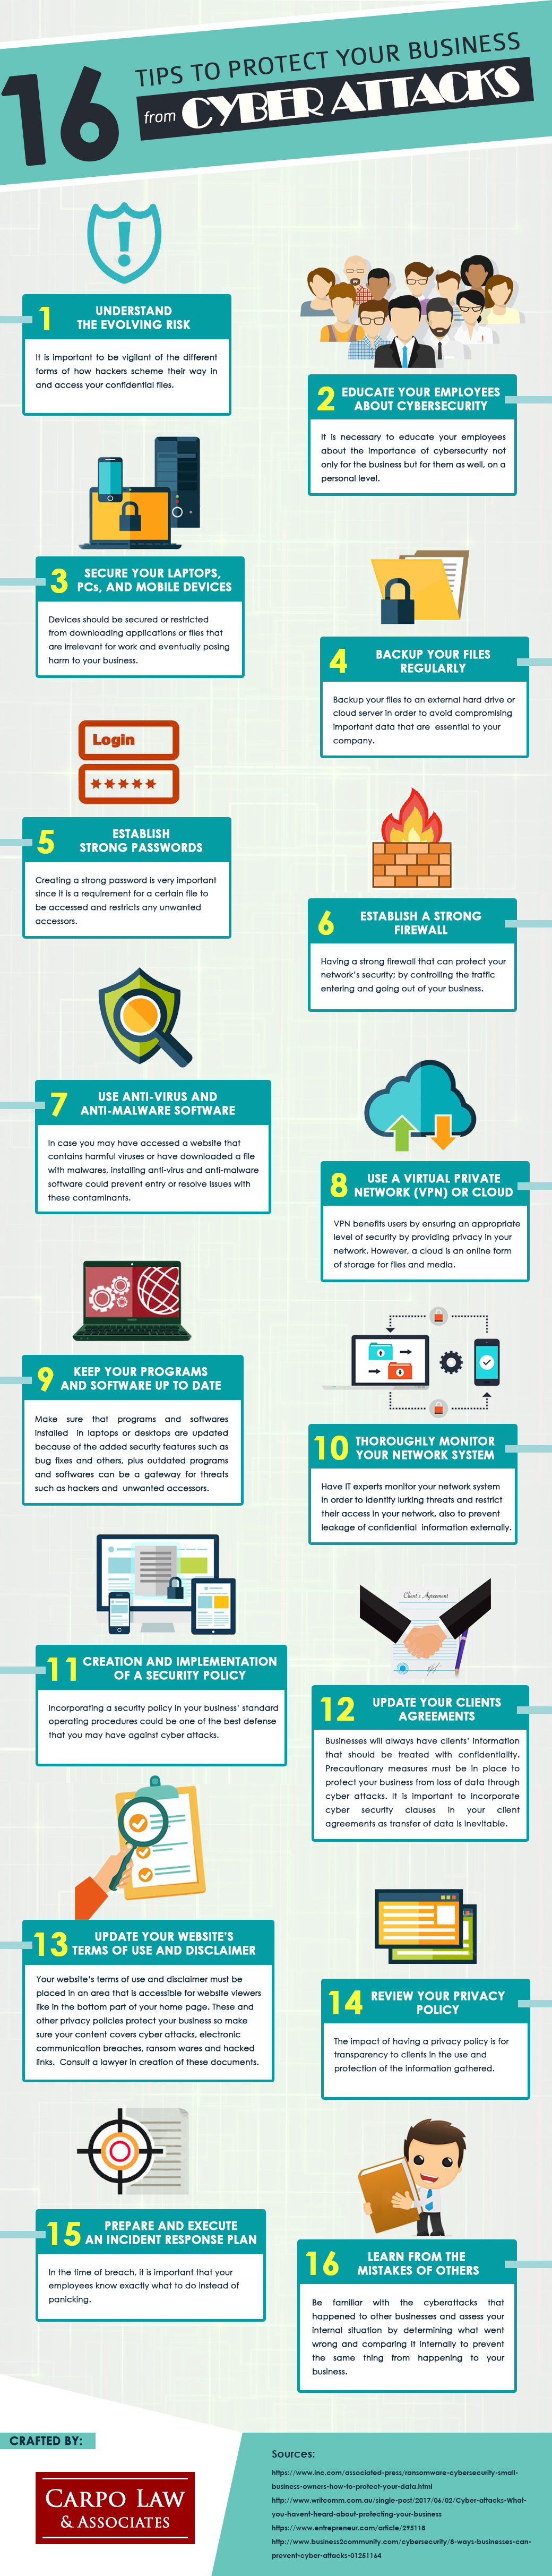 16 Tips to Protect your Business from Cyber Attacks